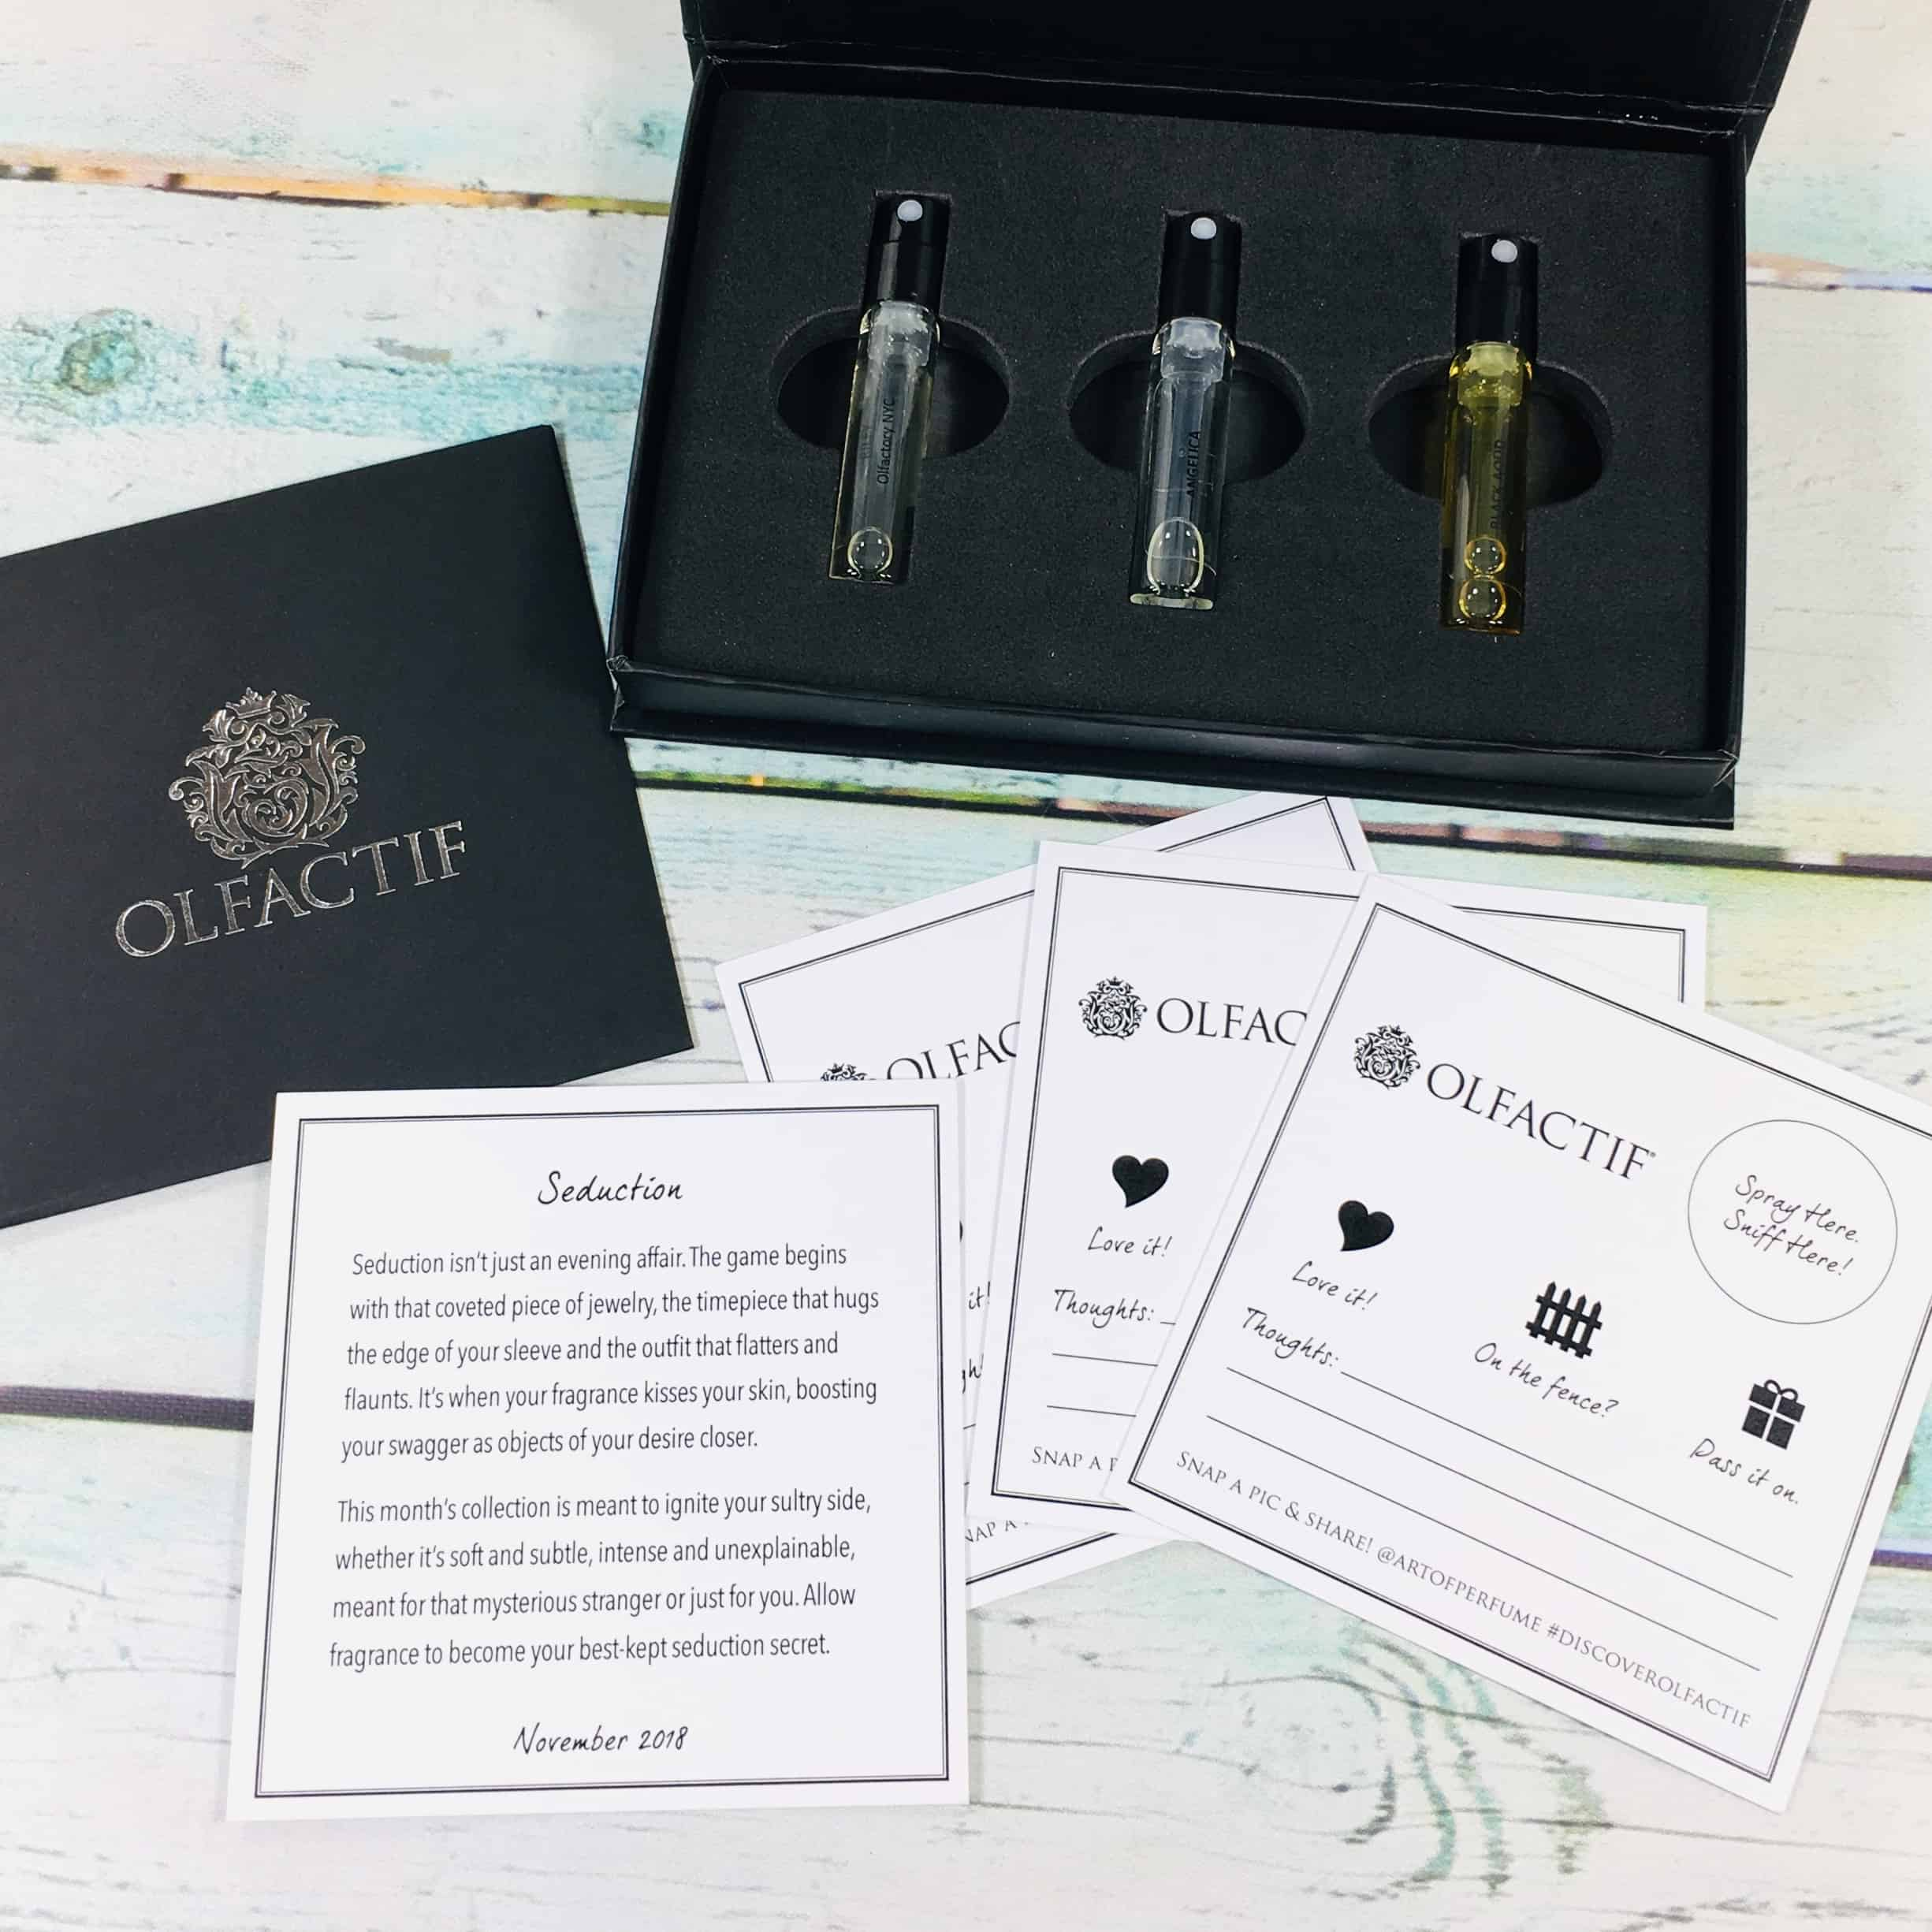 Olfactif for Women November 2018 Subscription Box Review